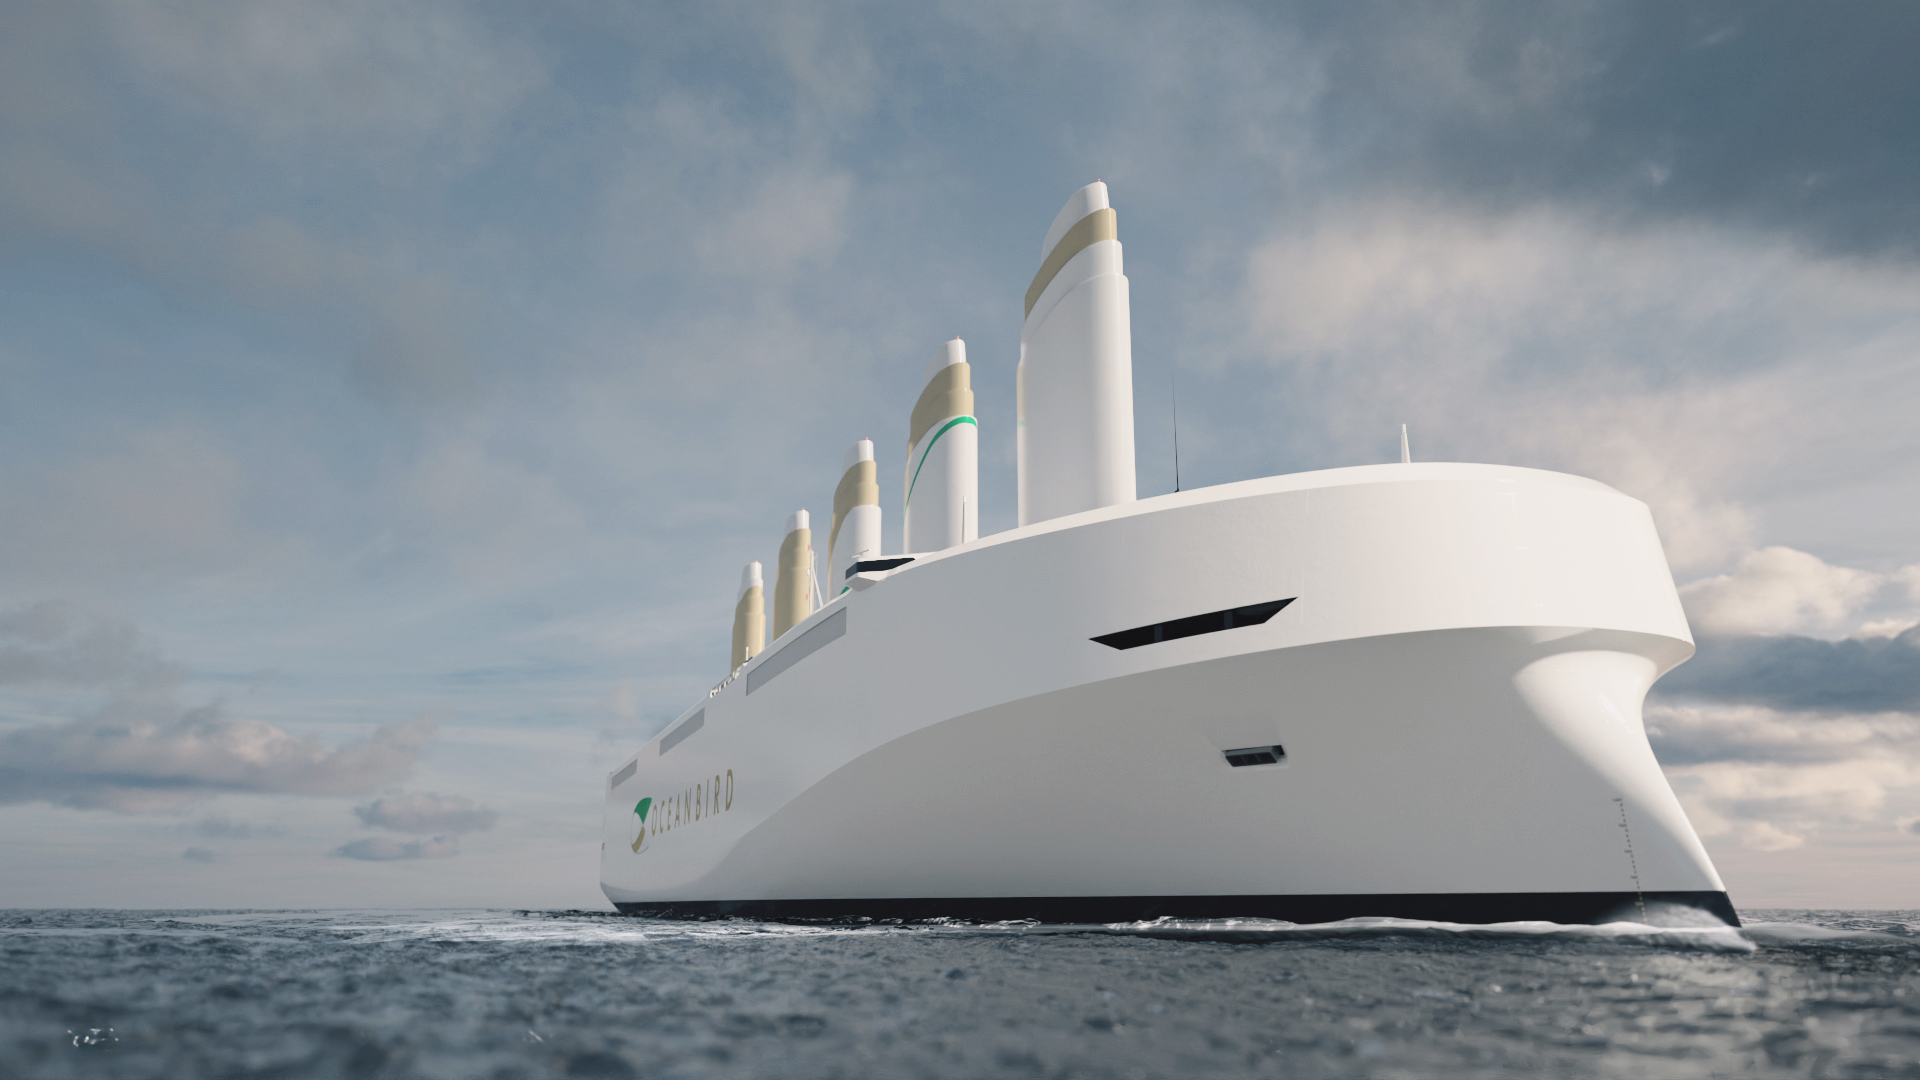 Wind-powered transatlantic car carrier could cut carbon emissions by 90%